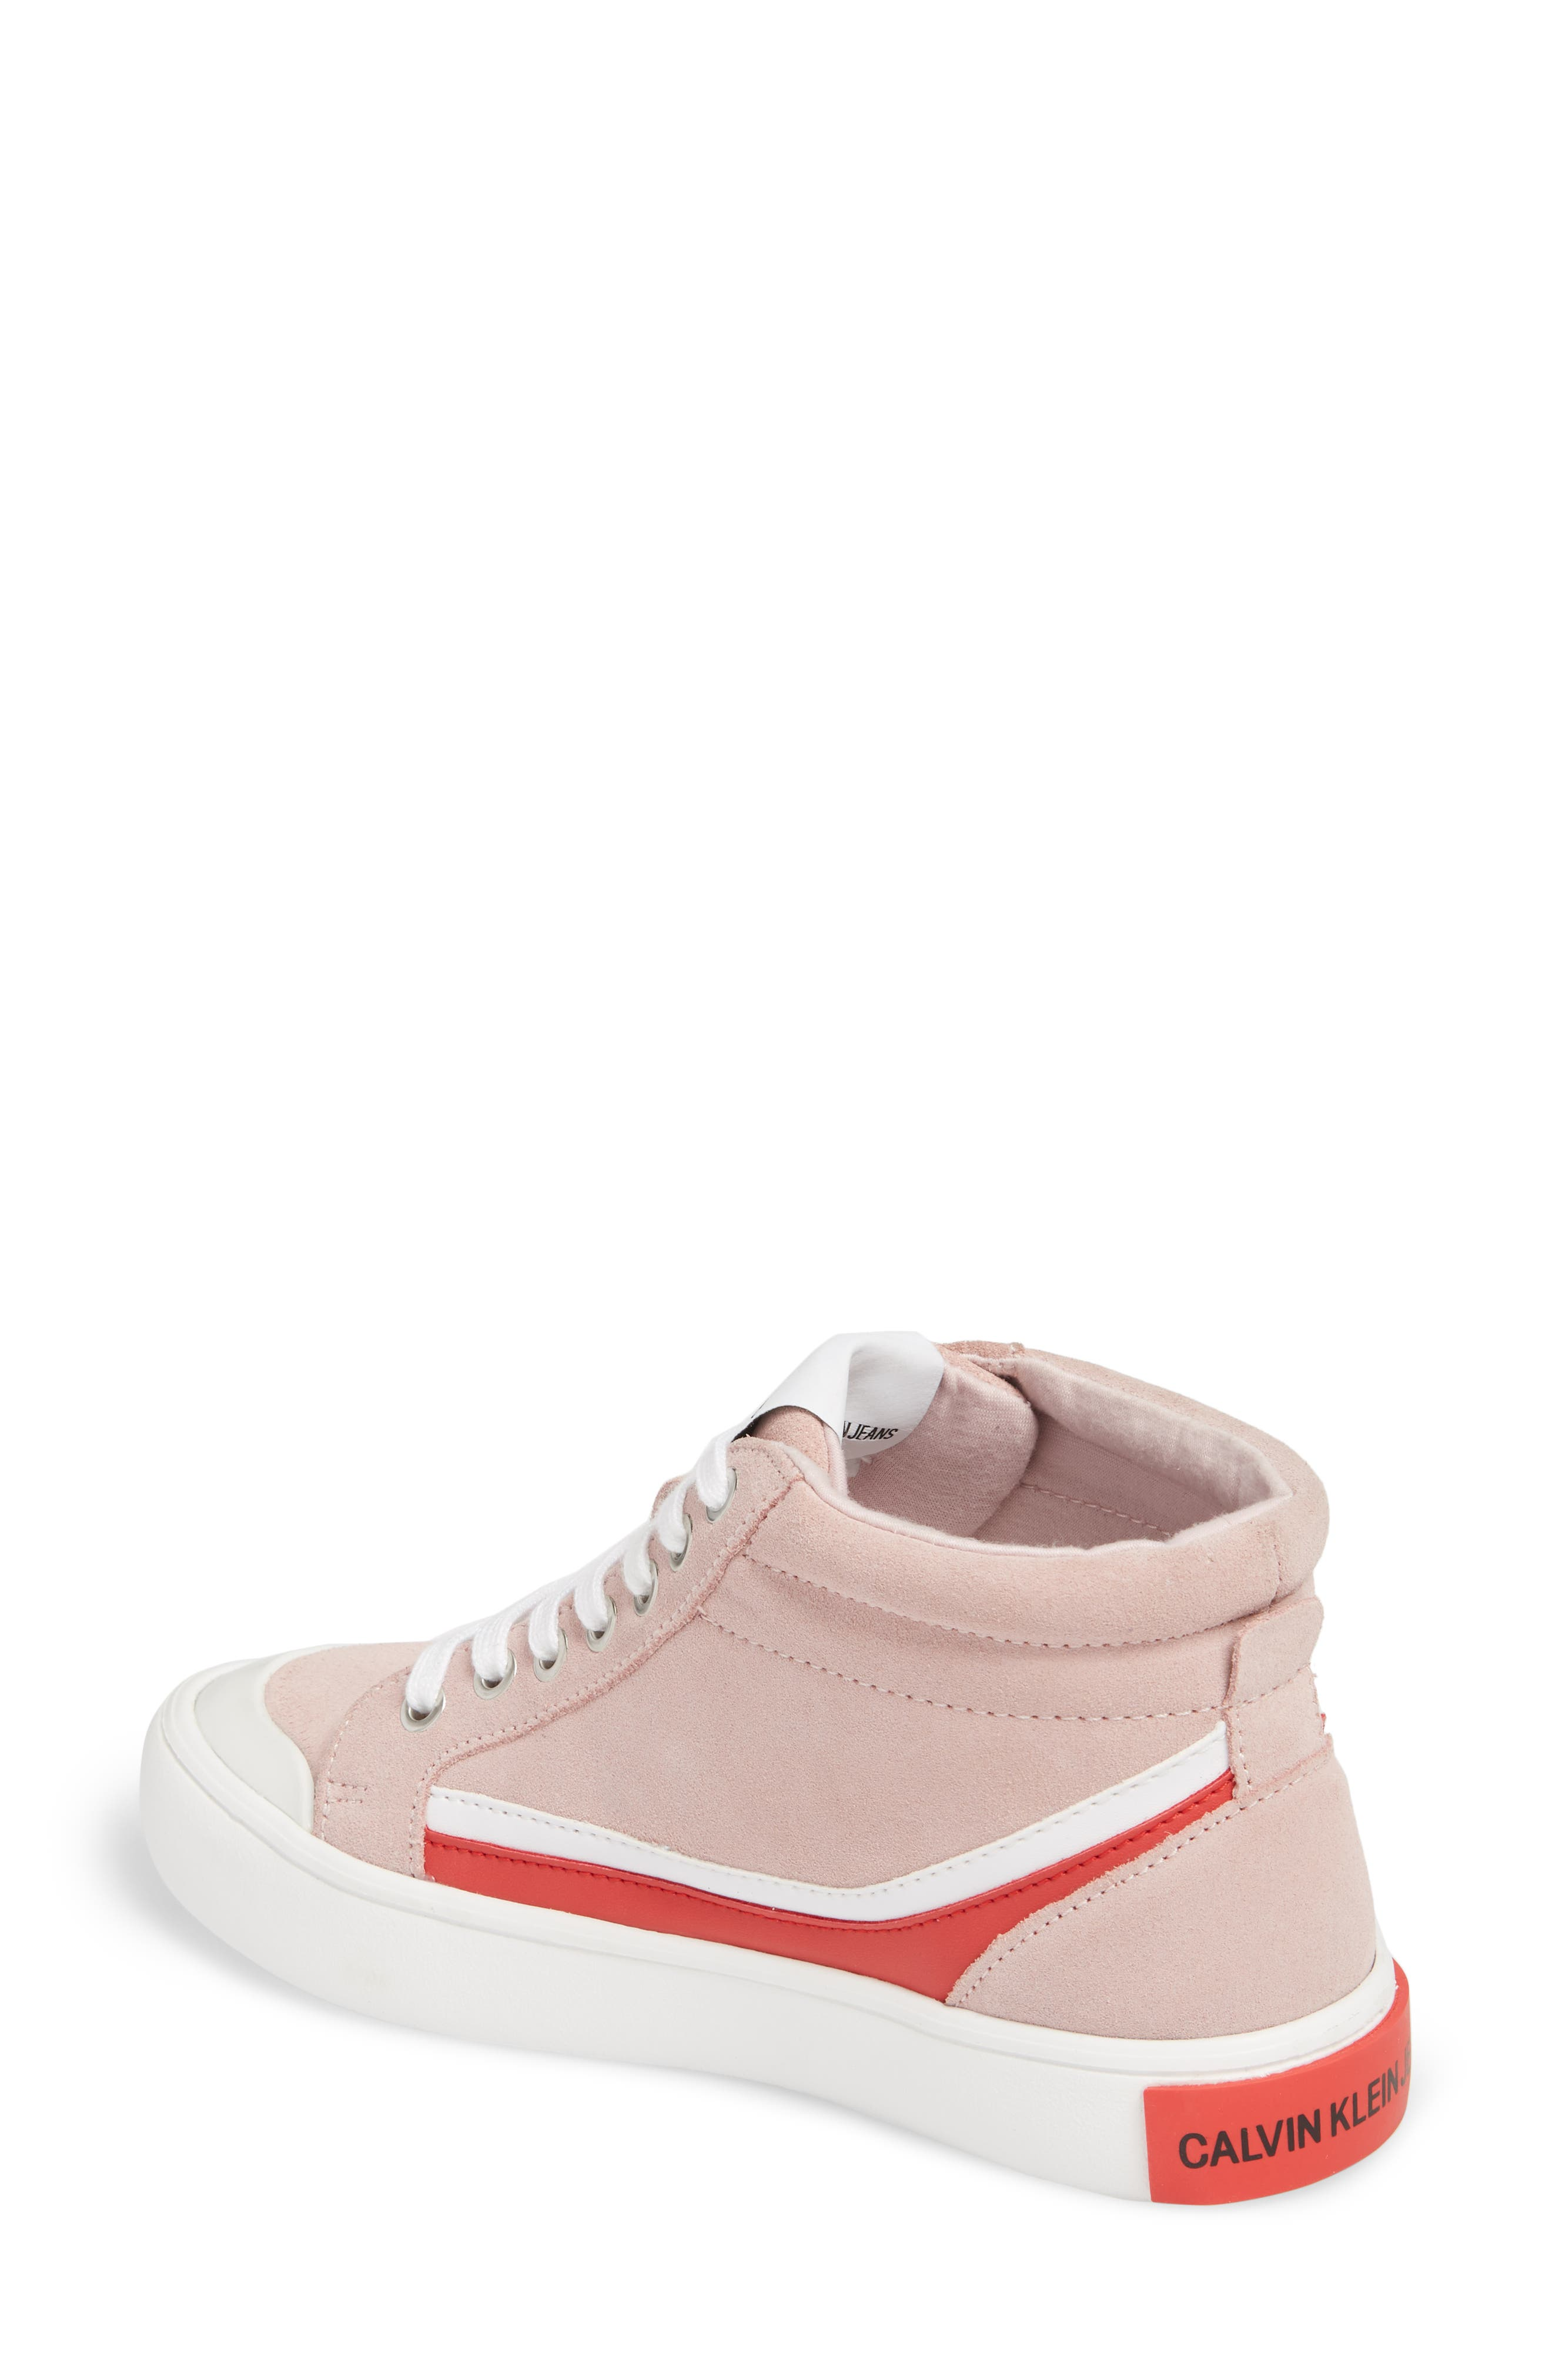 High Top Sneaker,                             Alternate thumbnail 2, color,                             Chintz Rose/ White/ Tomato